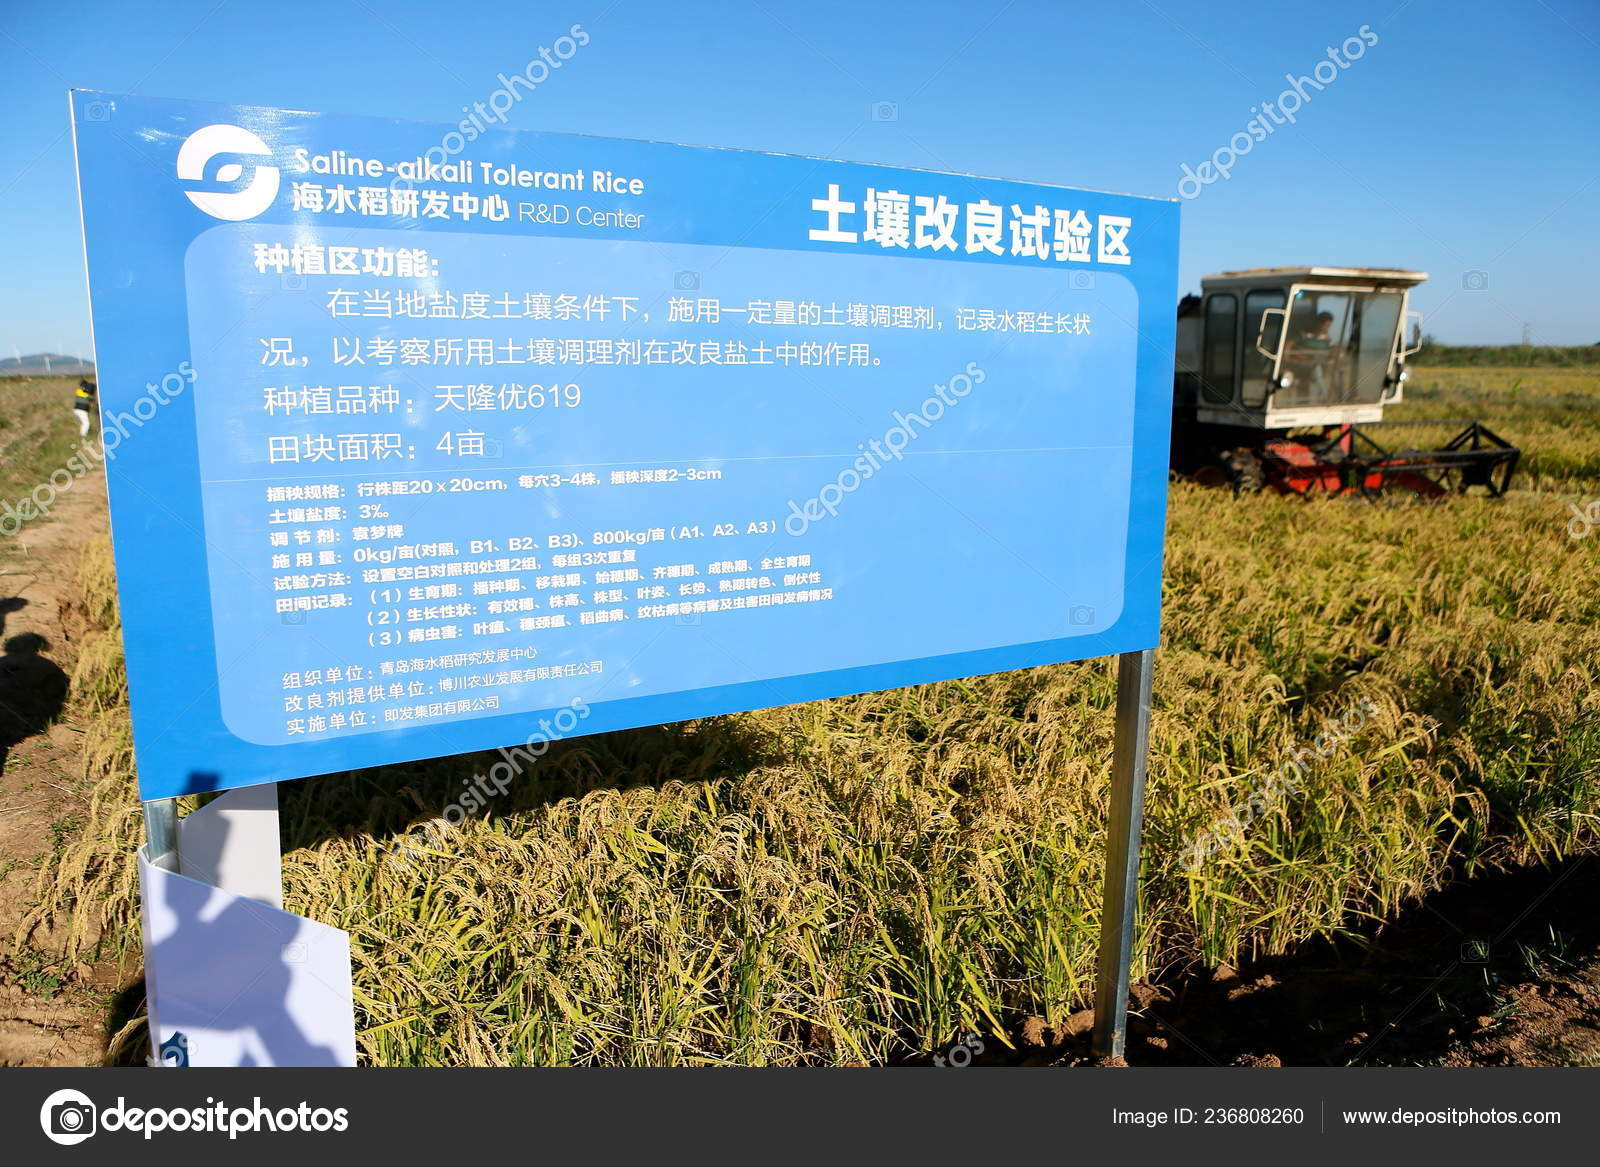 Machine Harvest Rice Can Survive Salinity Rice Growing